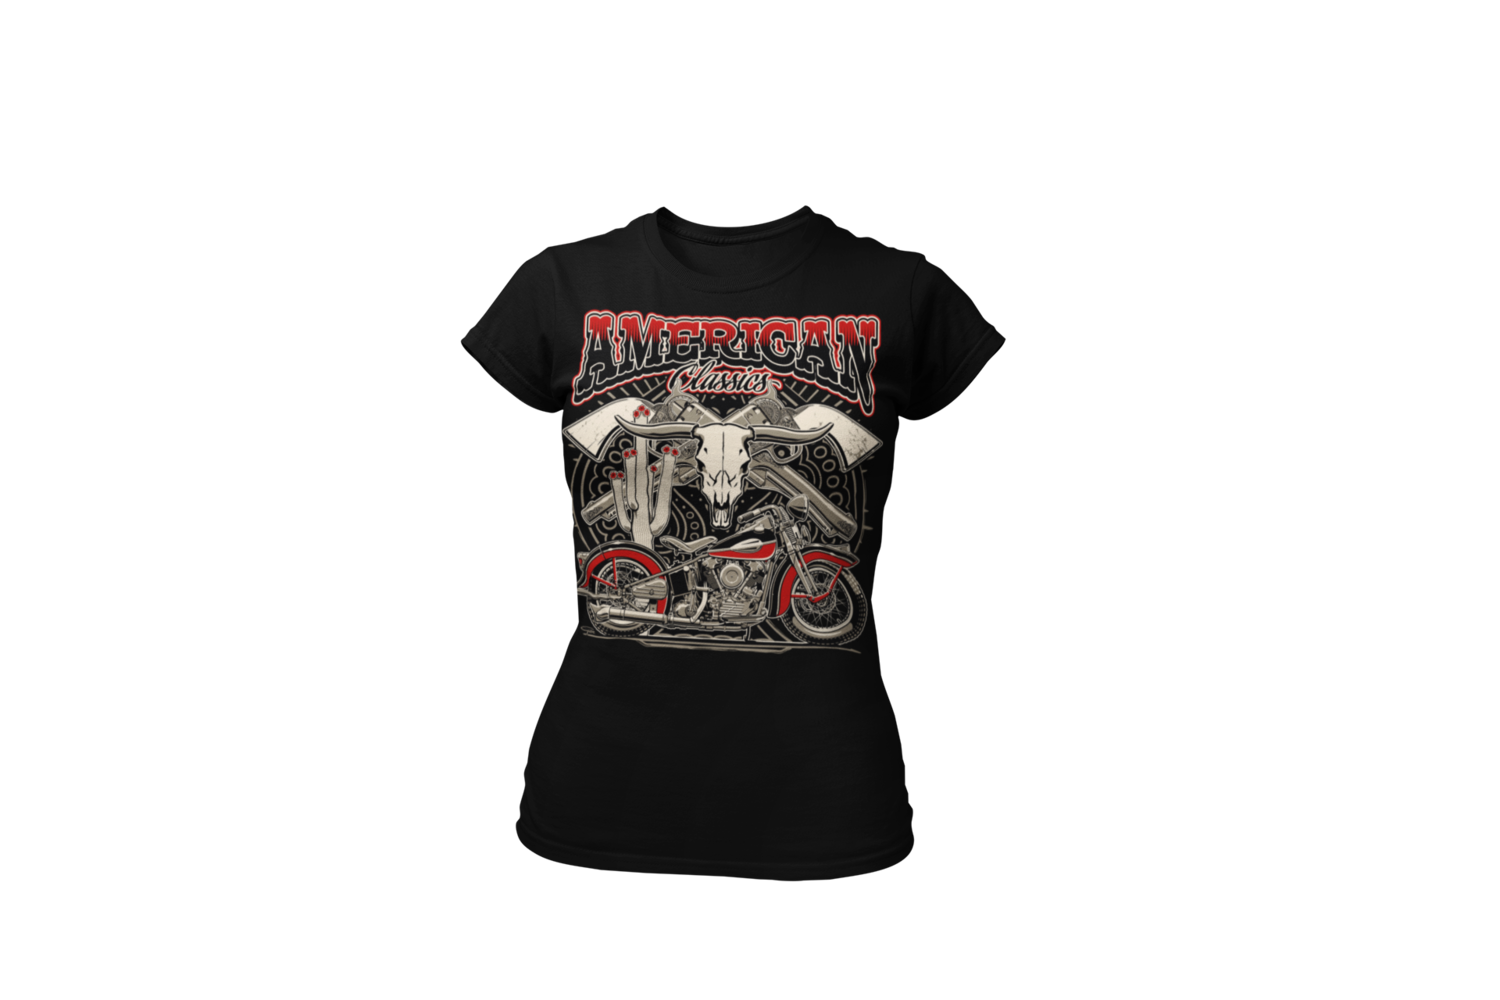 """AMERICAN CLASSICS """"KnuckleHead""""  T-SHIRT WOMAN by Ger """"Dutch Courage"""" Peters artwork"""